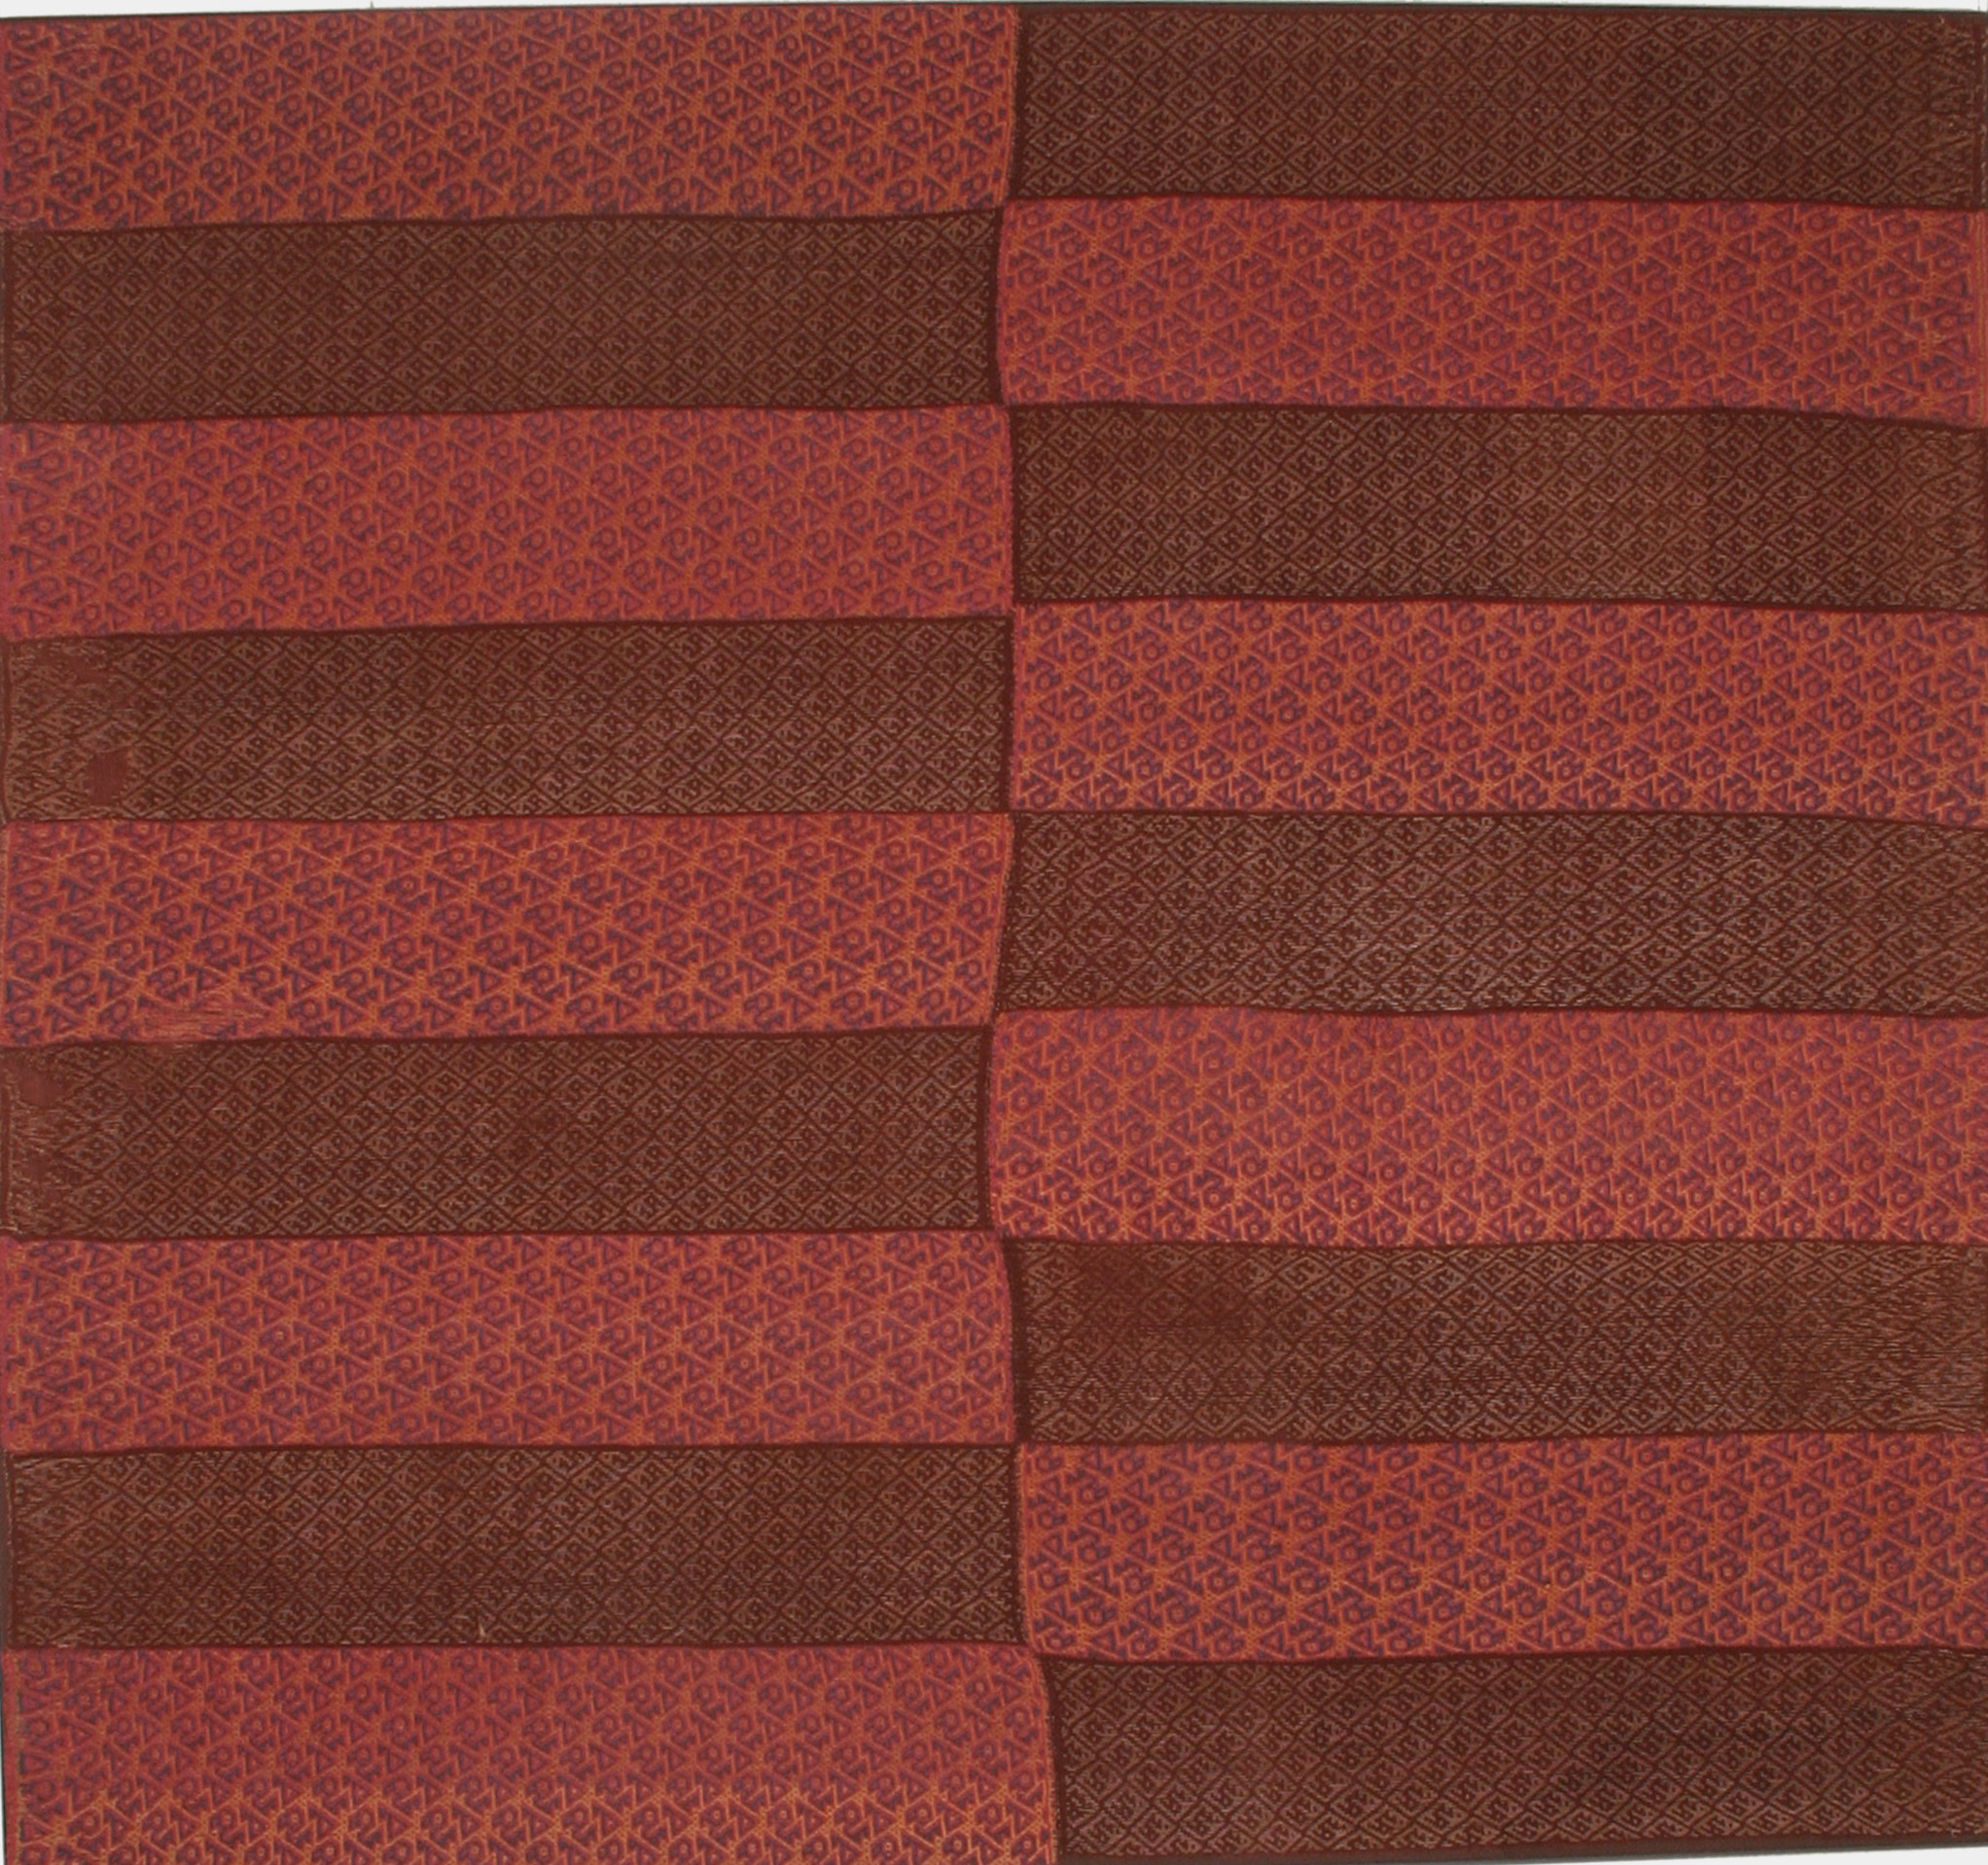 "Mantle, Peru, Chancay culture (1100 – 1400 AD). Camelid wool, two different techniques of supplementary warp floats, 59 ½"" x 64"". Gail Martin at AOA New York"